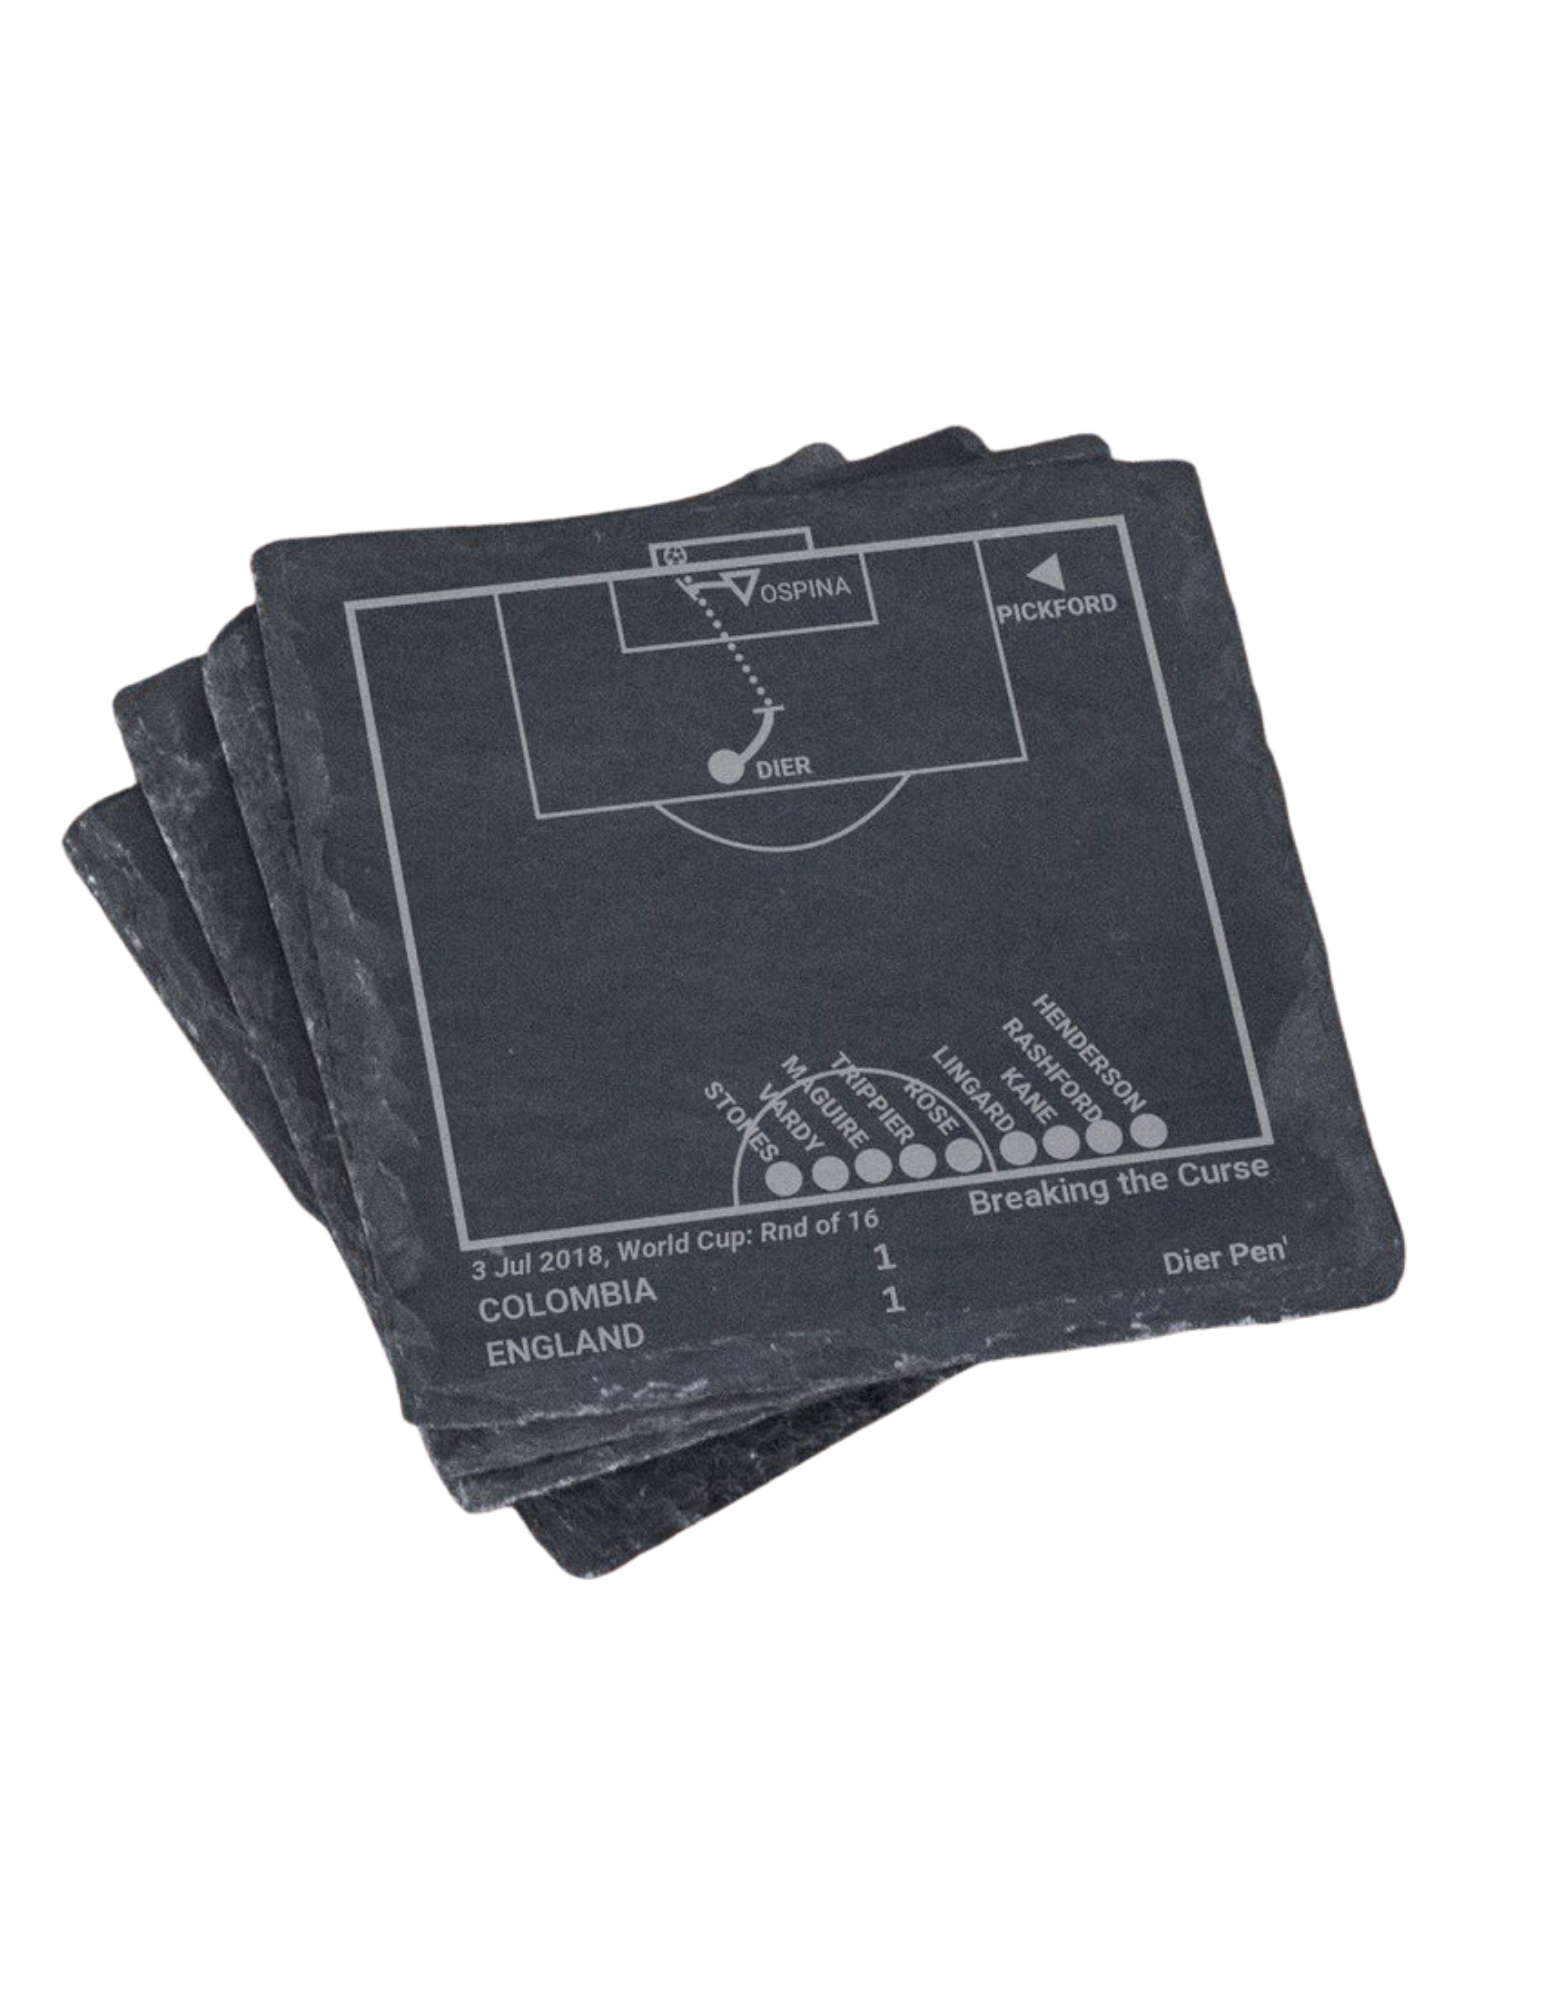 Greatest England Soccer World Cup Plays Coasters